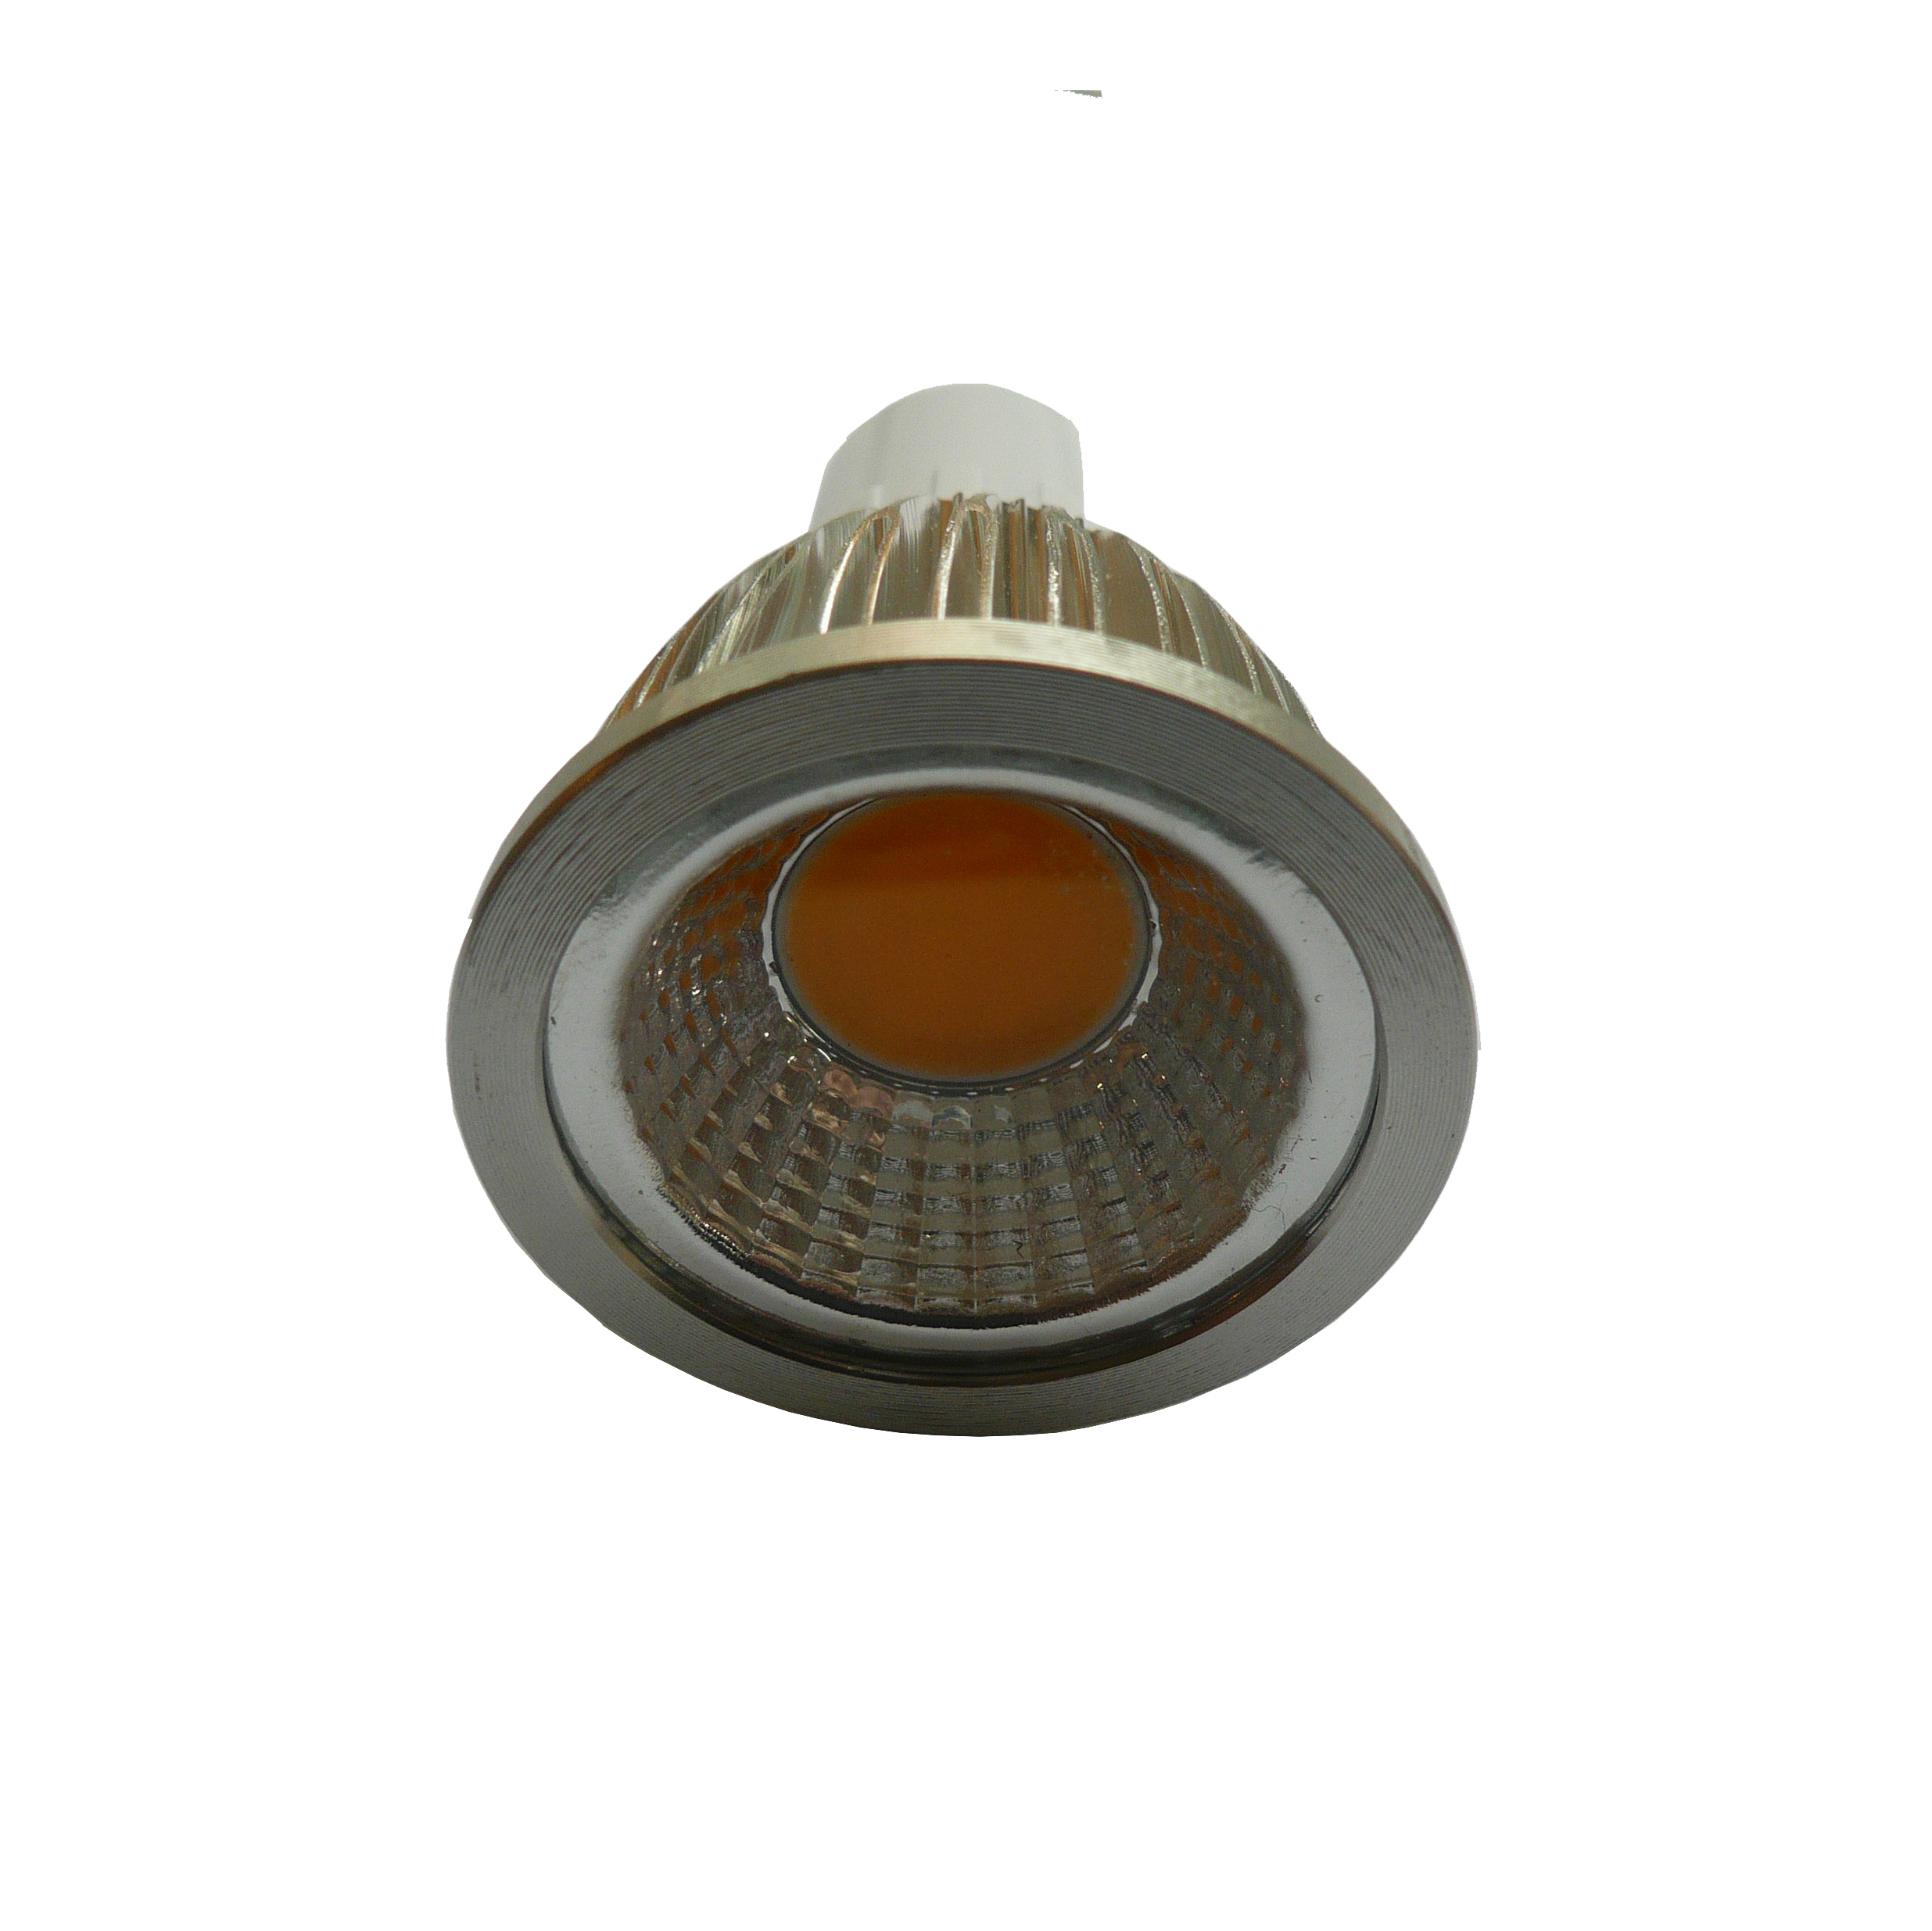 Led 230v Dimmbar Gu10 Led Spot 230v 5 Watt Dimbaar Warm Wit